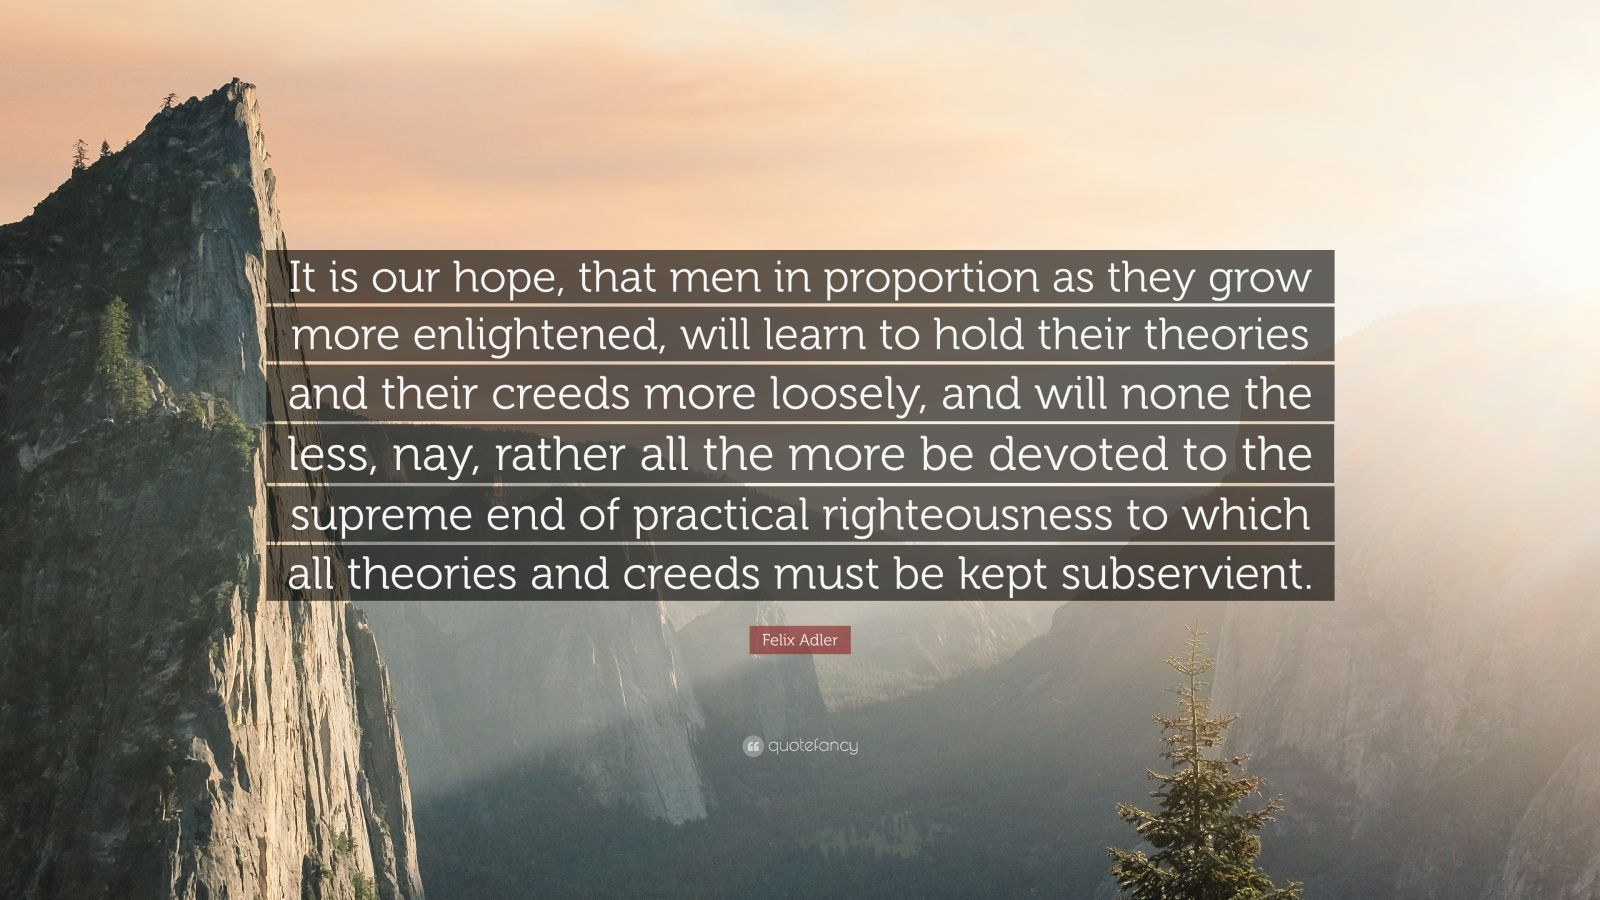 """Felix Adler Quote: """"It is our hope, that men in proportion as they grow more enlightened, will learn to hold their theories and their creeds more loosely, and will none the less, nay, rather all the more be devoted to the supreme end of practical righteousness to which all theories and creeds must be kept subservient."""""""